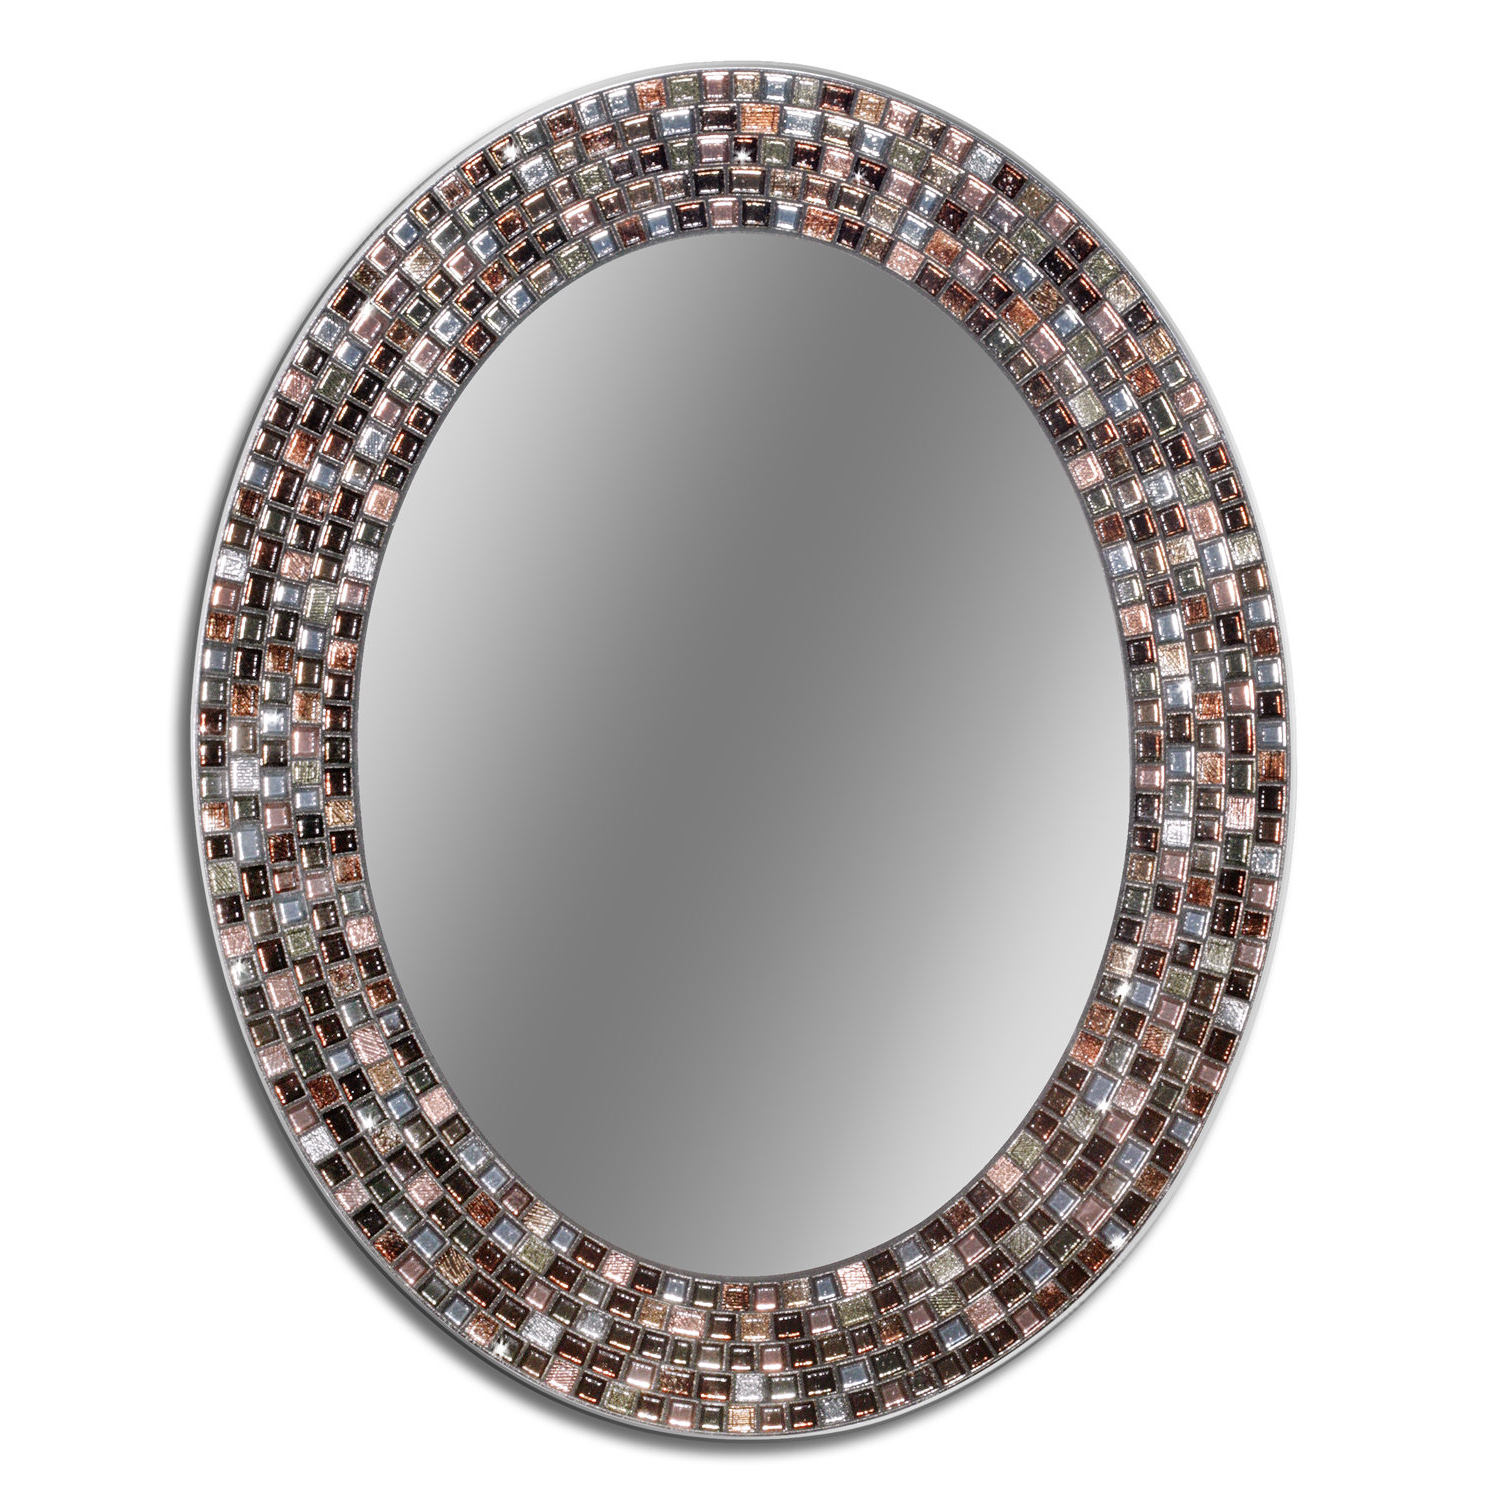 Selden Frameless Oval Mosaic Wall Mirror With Most Recent Mosaic Wall Mirrors (View 8 of 20)